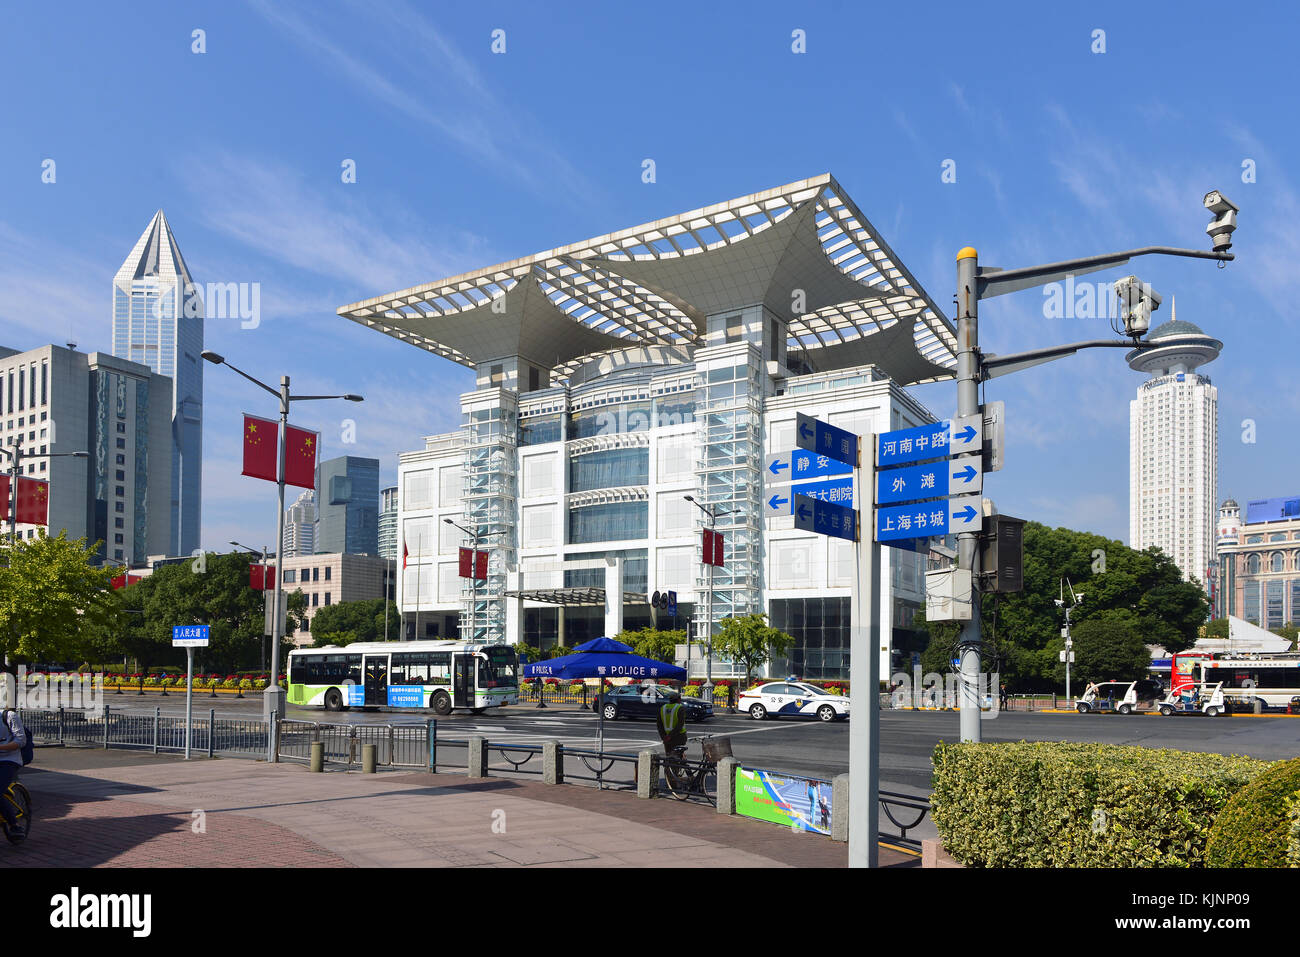 Shanghai, China - November 2, 2017:  View of the People's Square area of the Huangpu District, including The - Stock Image